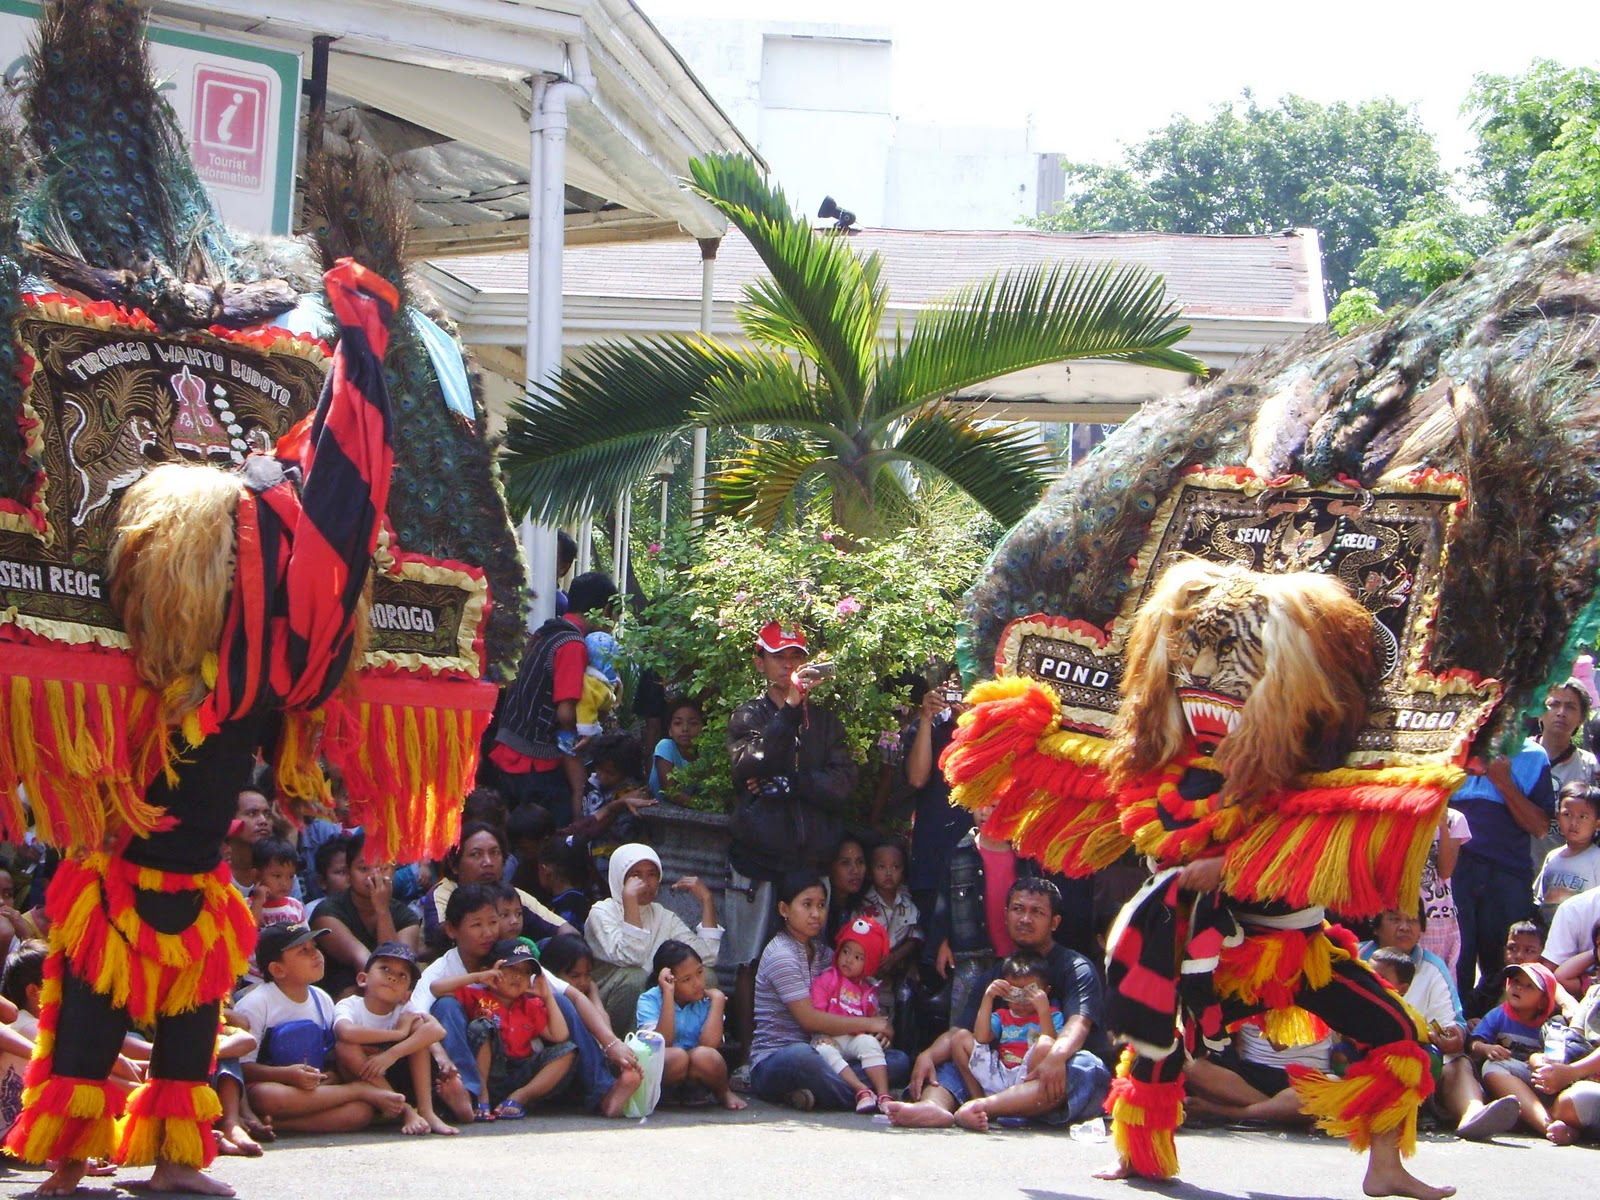 Reog ponorogoindonesia nakarasido hita whose members consist of reog groups from various regions in indonesia who had taken part in the national reog festival reog ponorogo be very open to altavistaventures Gallery